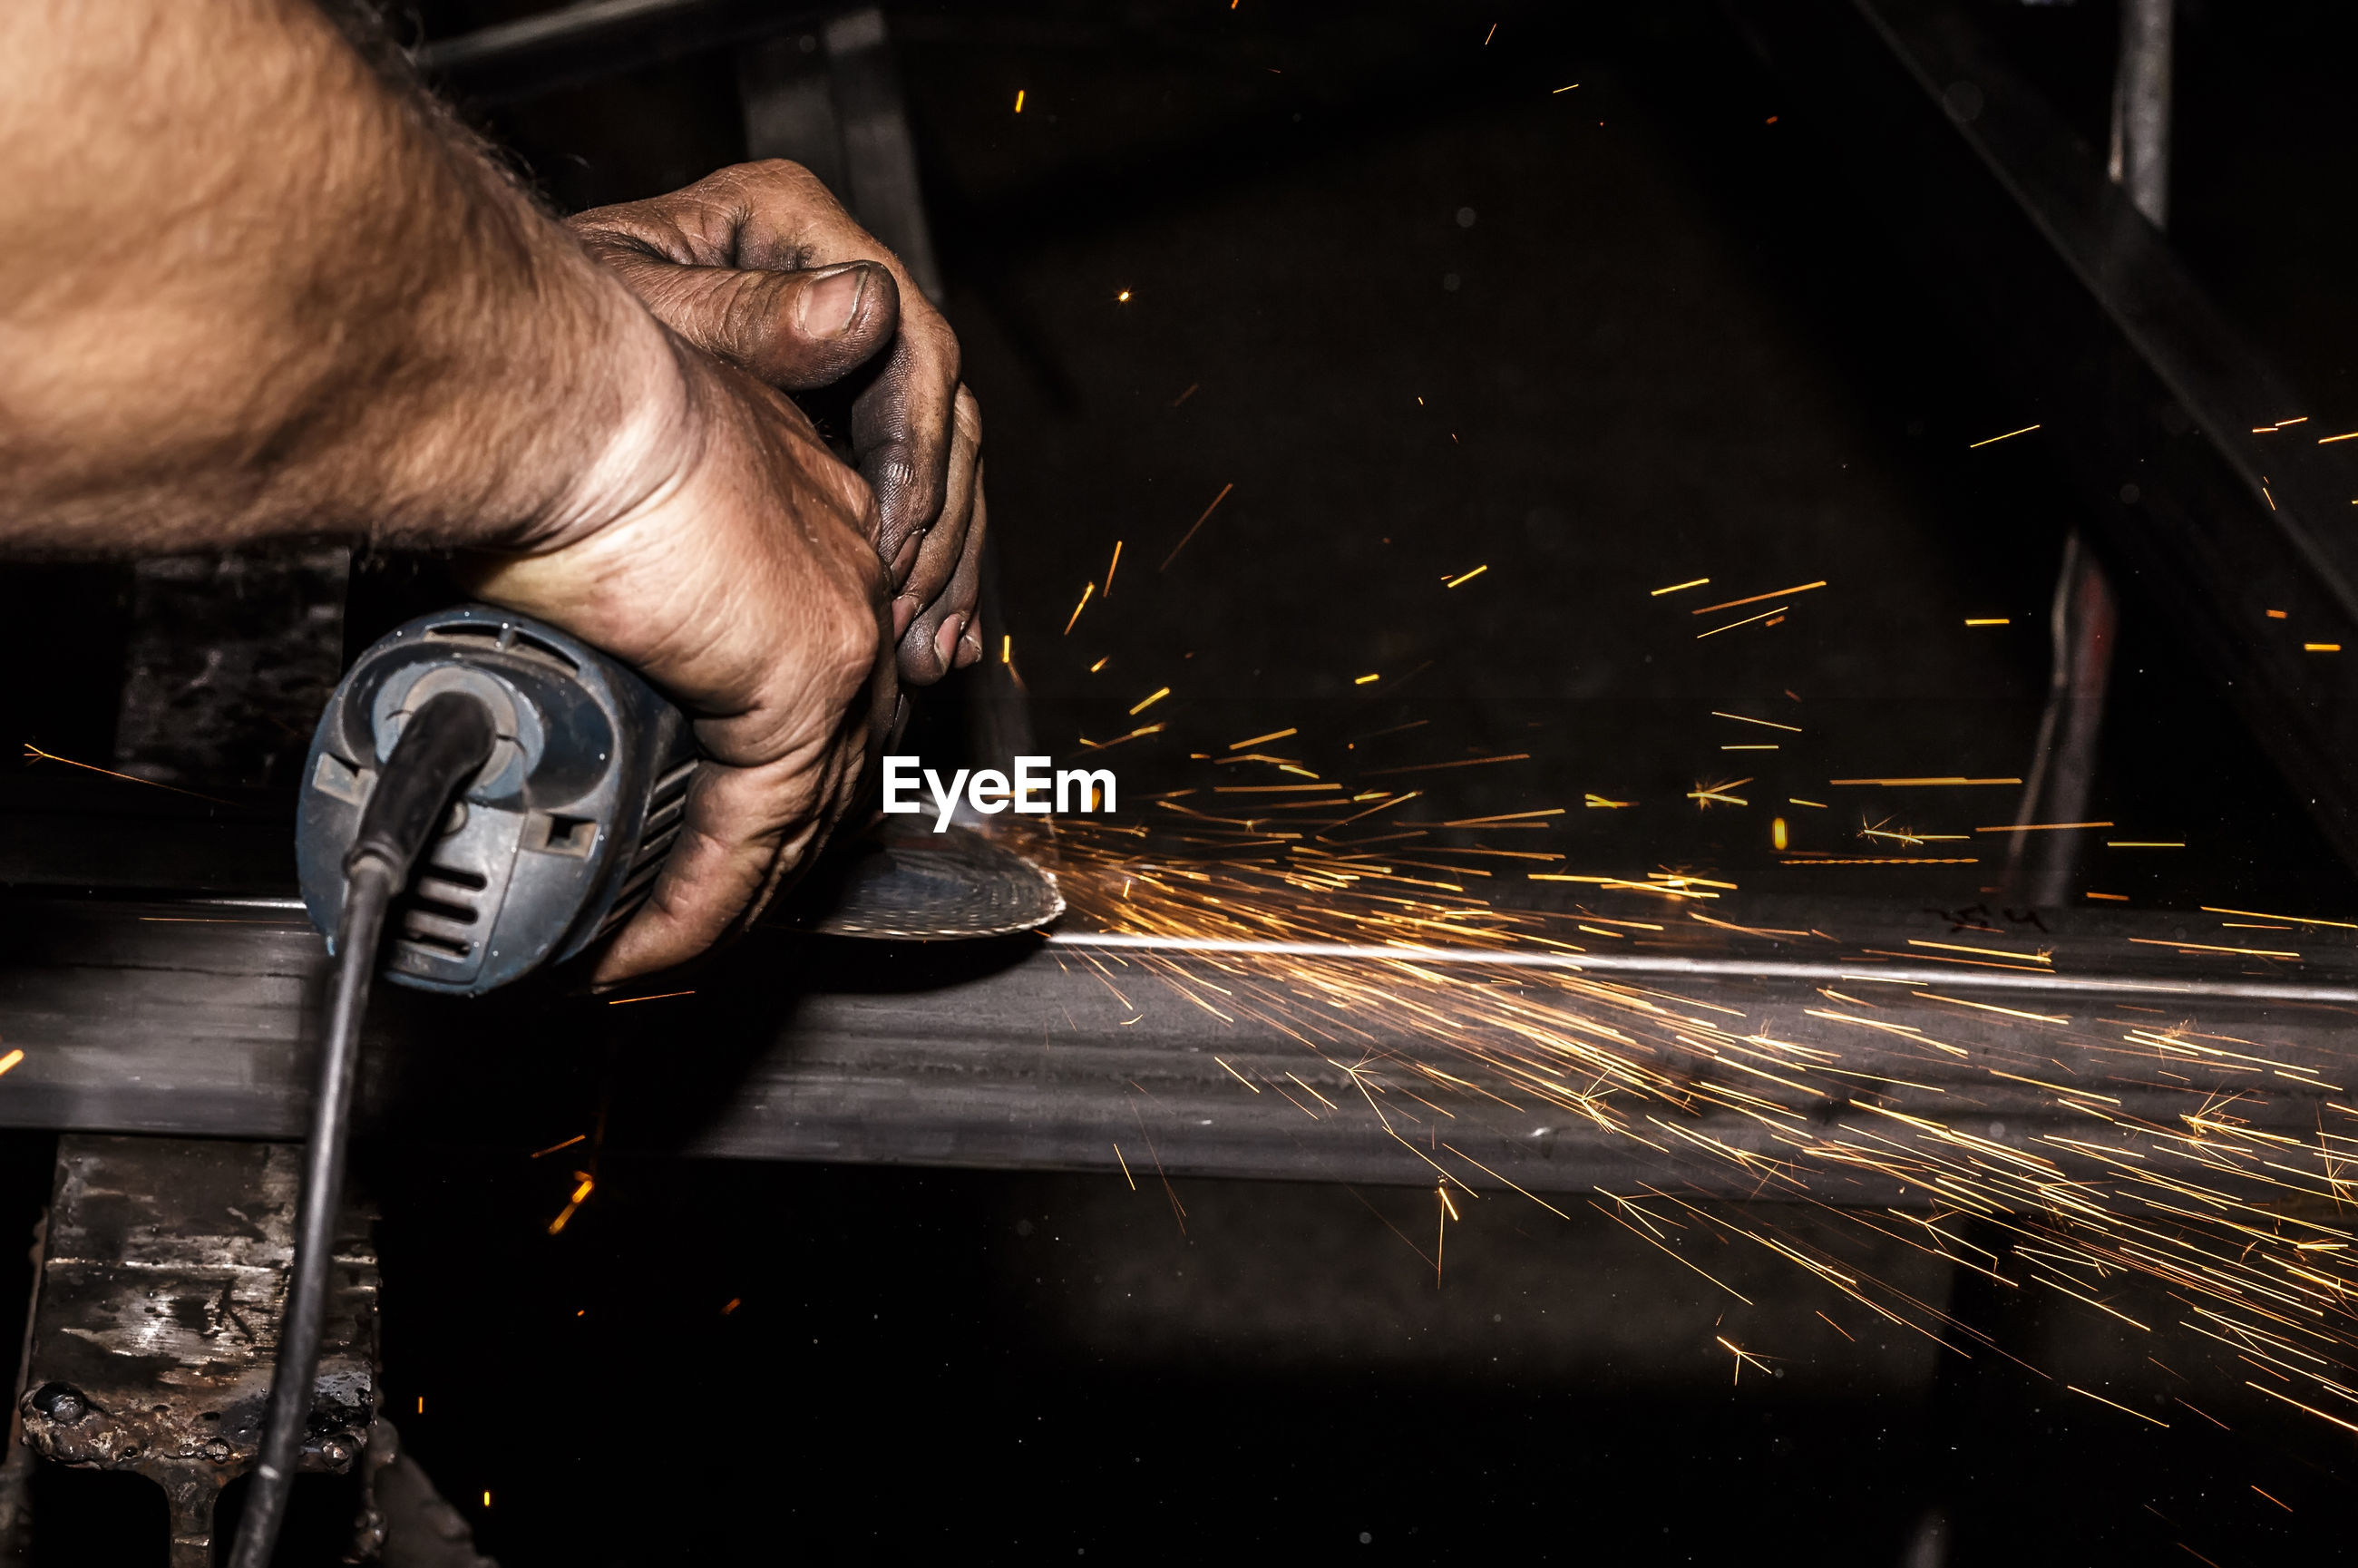 Close-up of manual worker using machinery while working at night